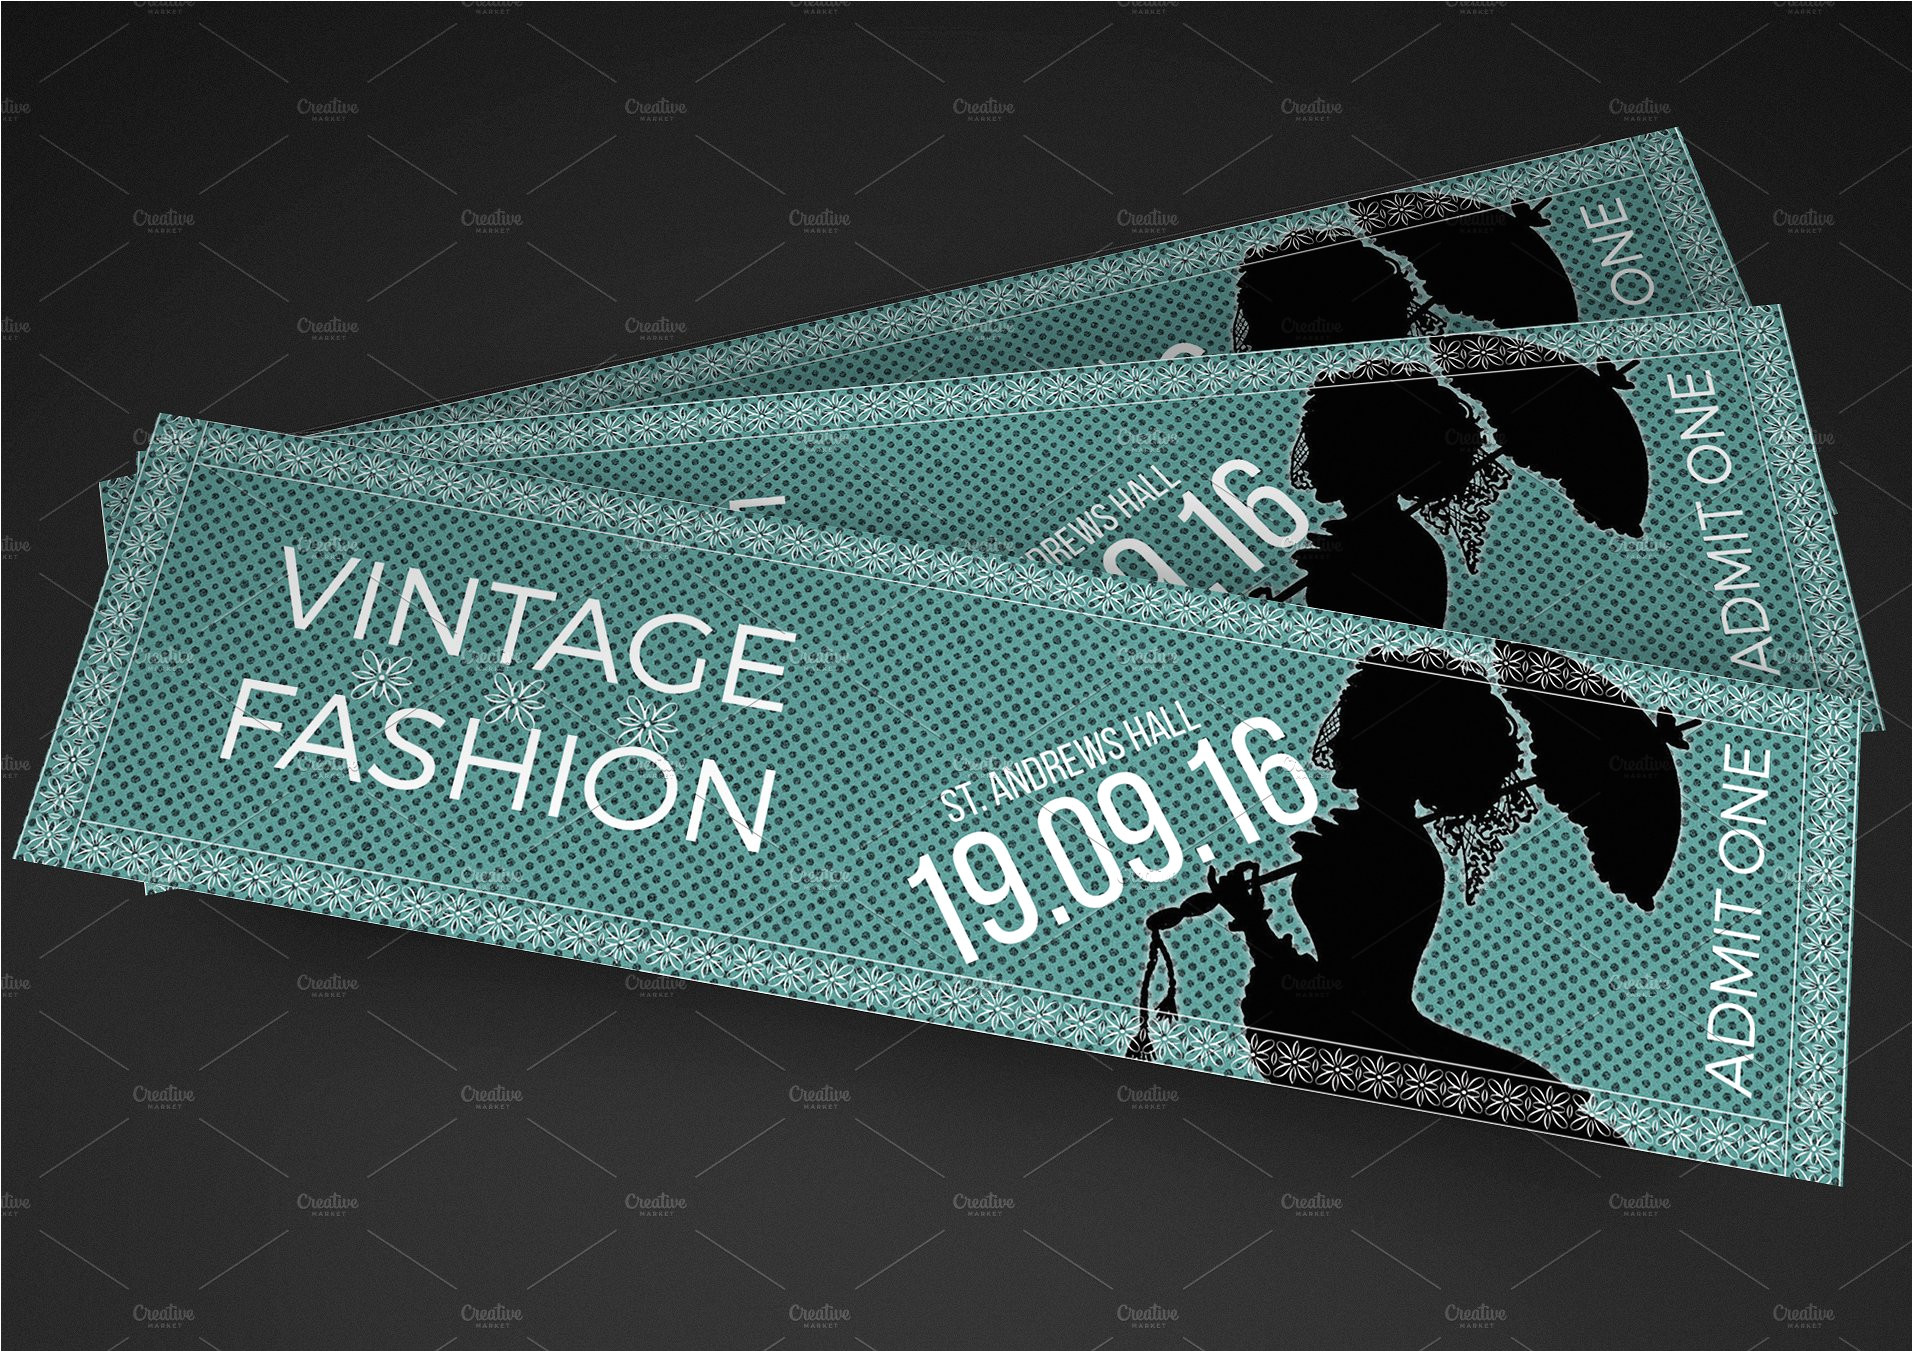 806483 vintage fashion show ticket